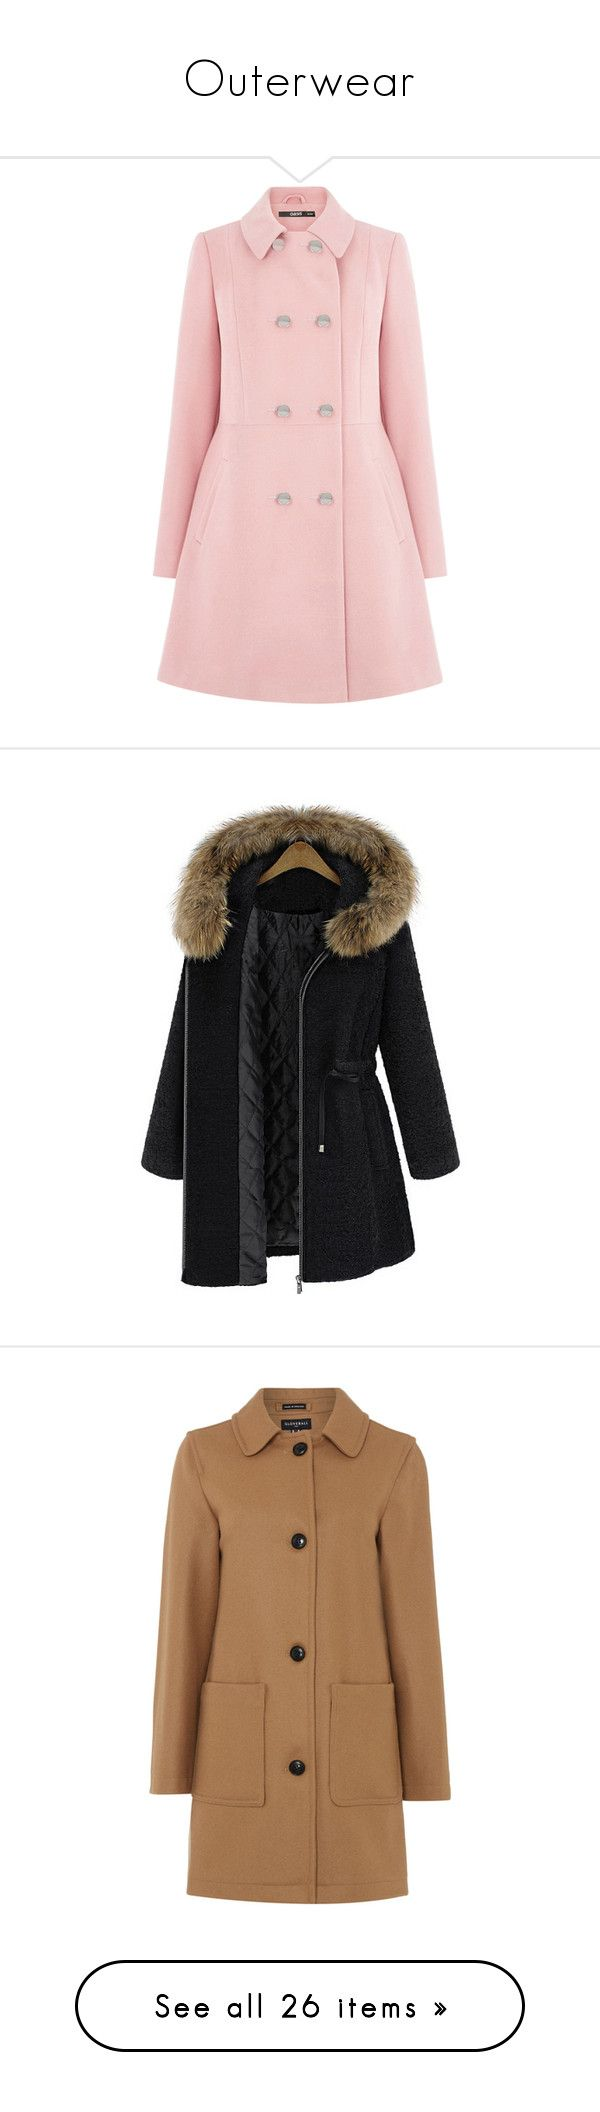 """""""Outerwear"""" by zyglavis ❤ liked on Polyvore featuring outerwear, coats, jackets, coats & jackets, pink, pink double breasted coat, oasis coats, double breasted coat, pink coat and zip coat"""